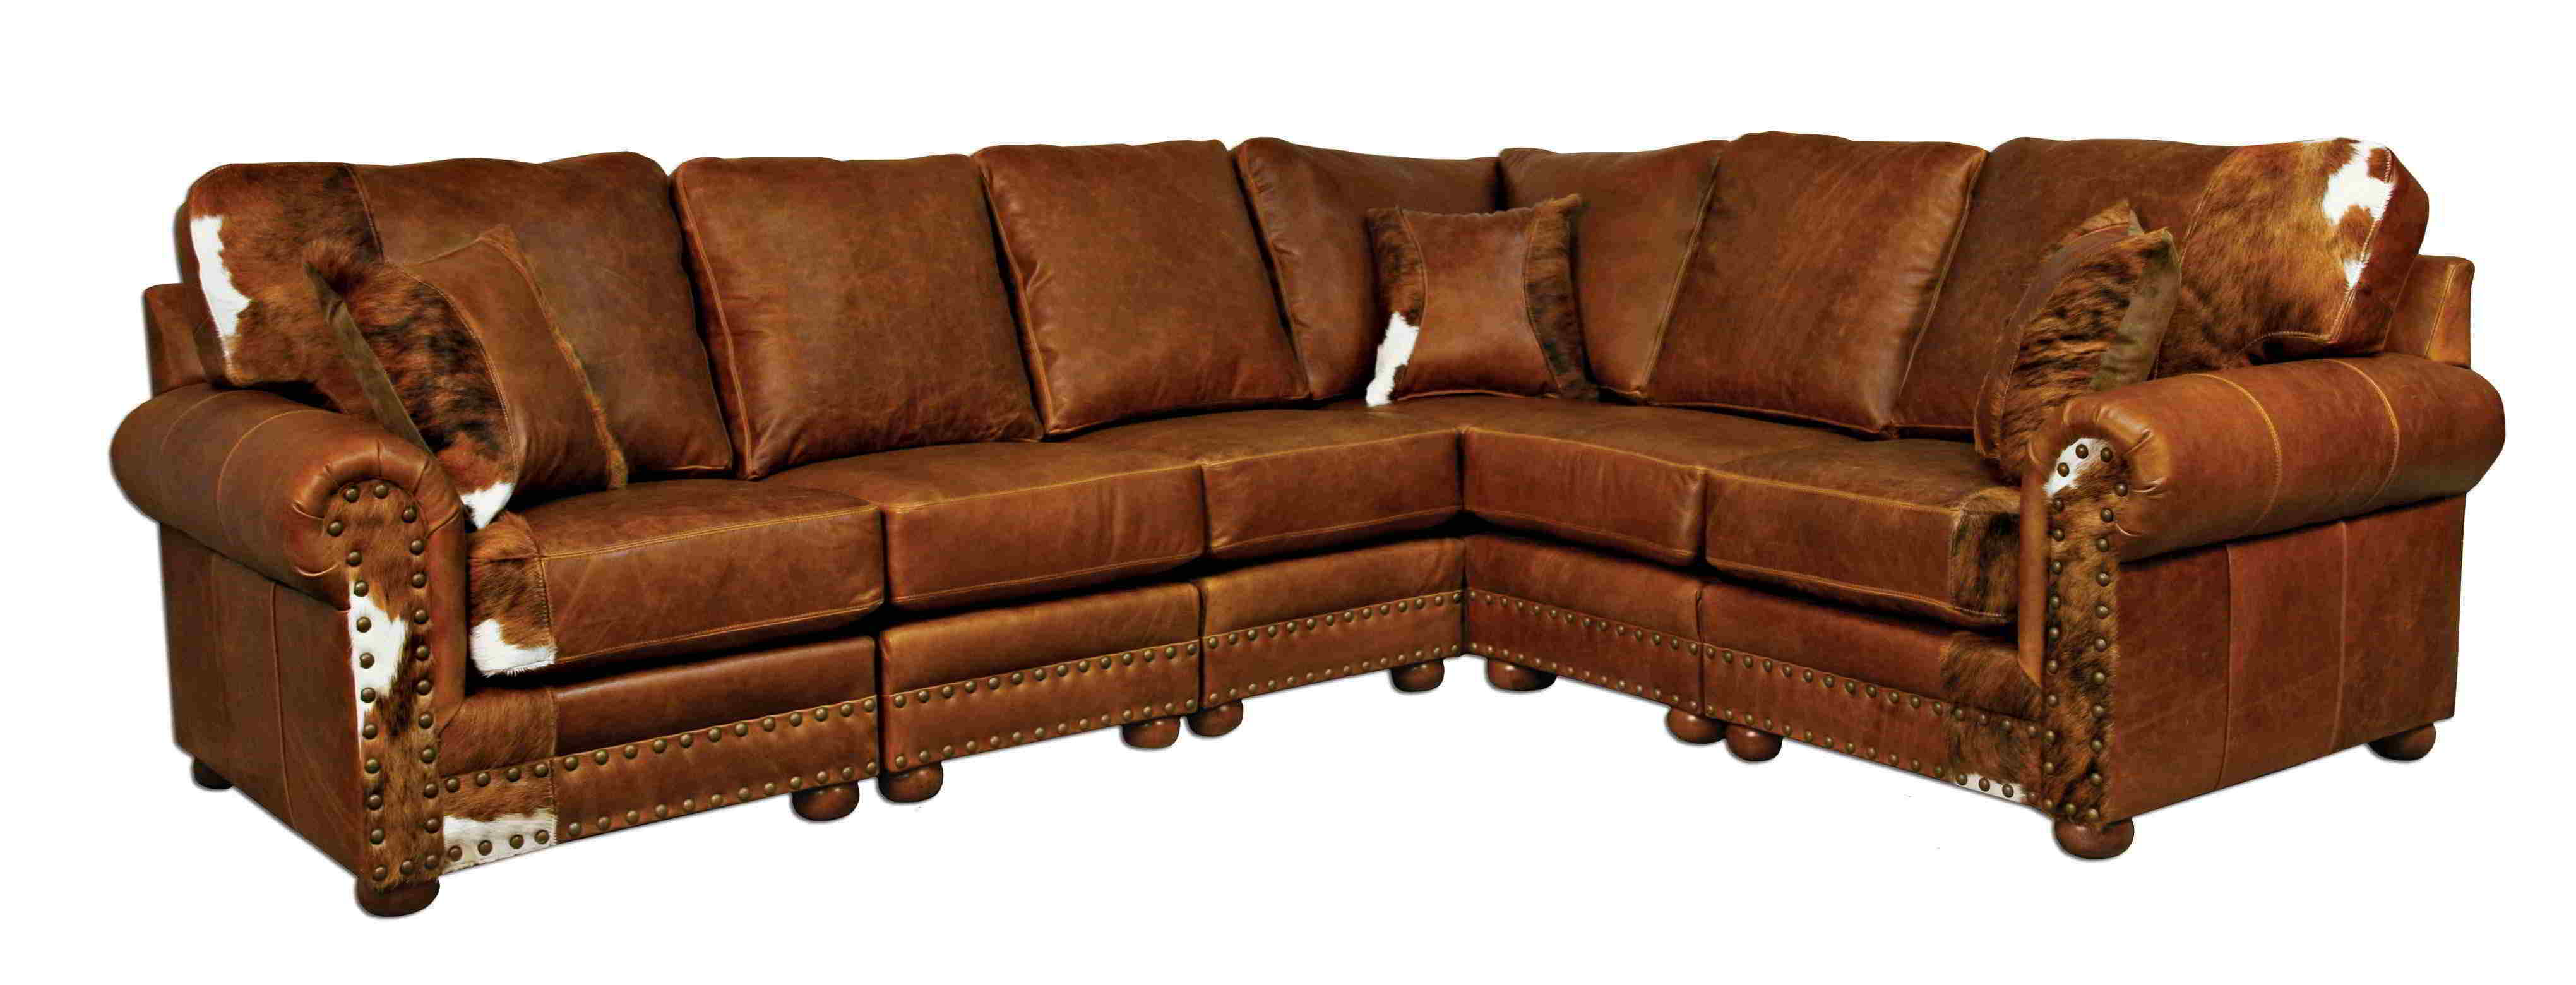 Fancy Country Sofas 12 For Your Contemporary Sofa Inspiration with Country Sofas